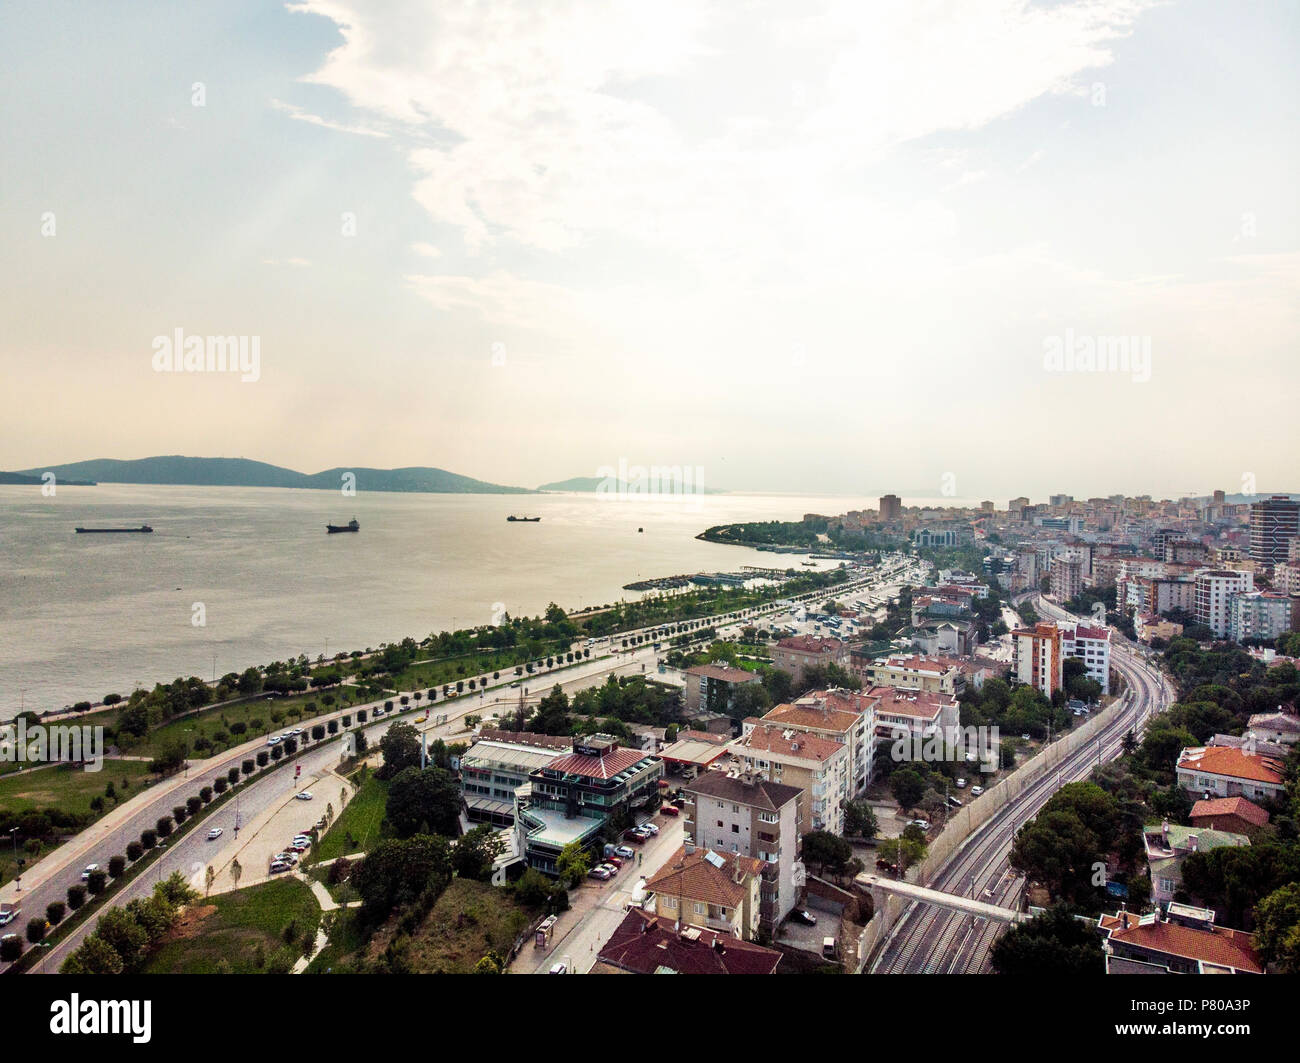 Aerial Drone View Of Kartal Istanbul City Seaside City Life Near